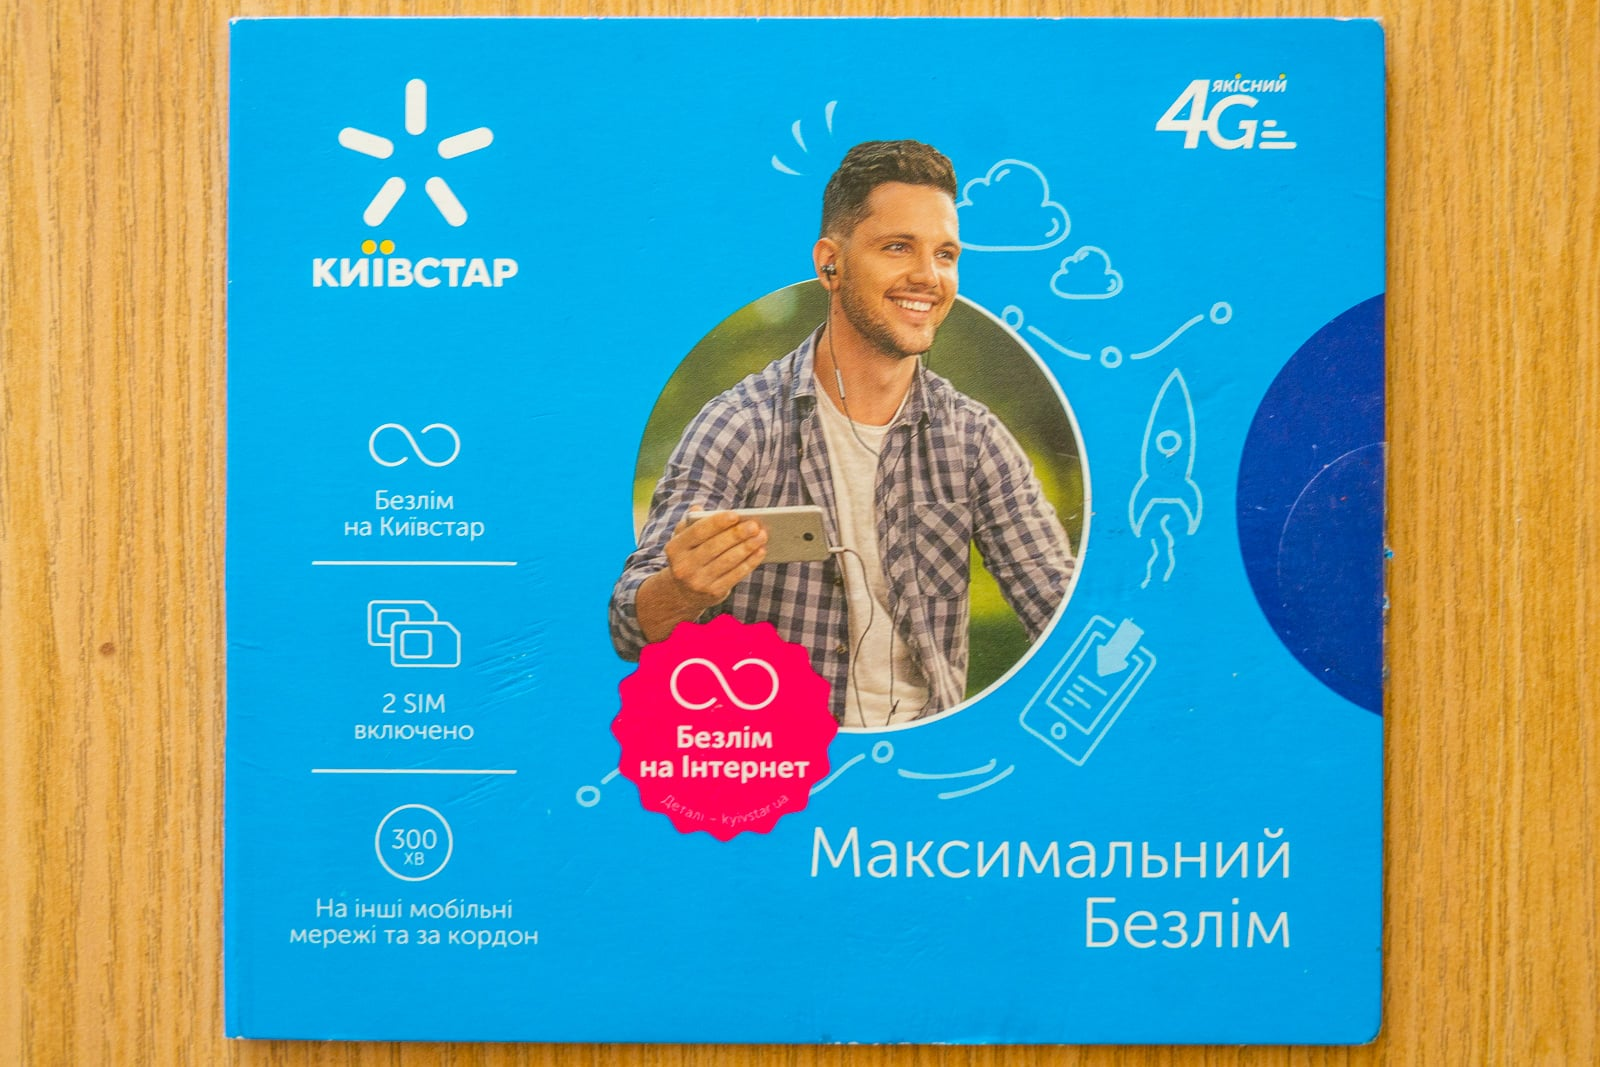 Kyivstar SIM card packaging in Ukraine